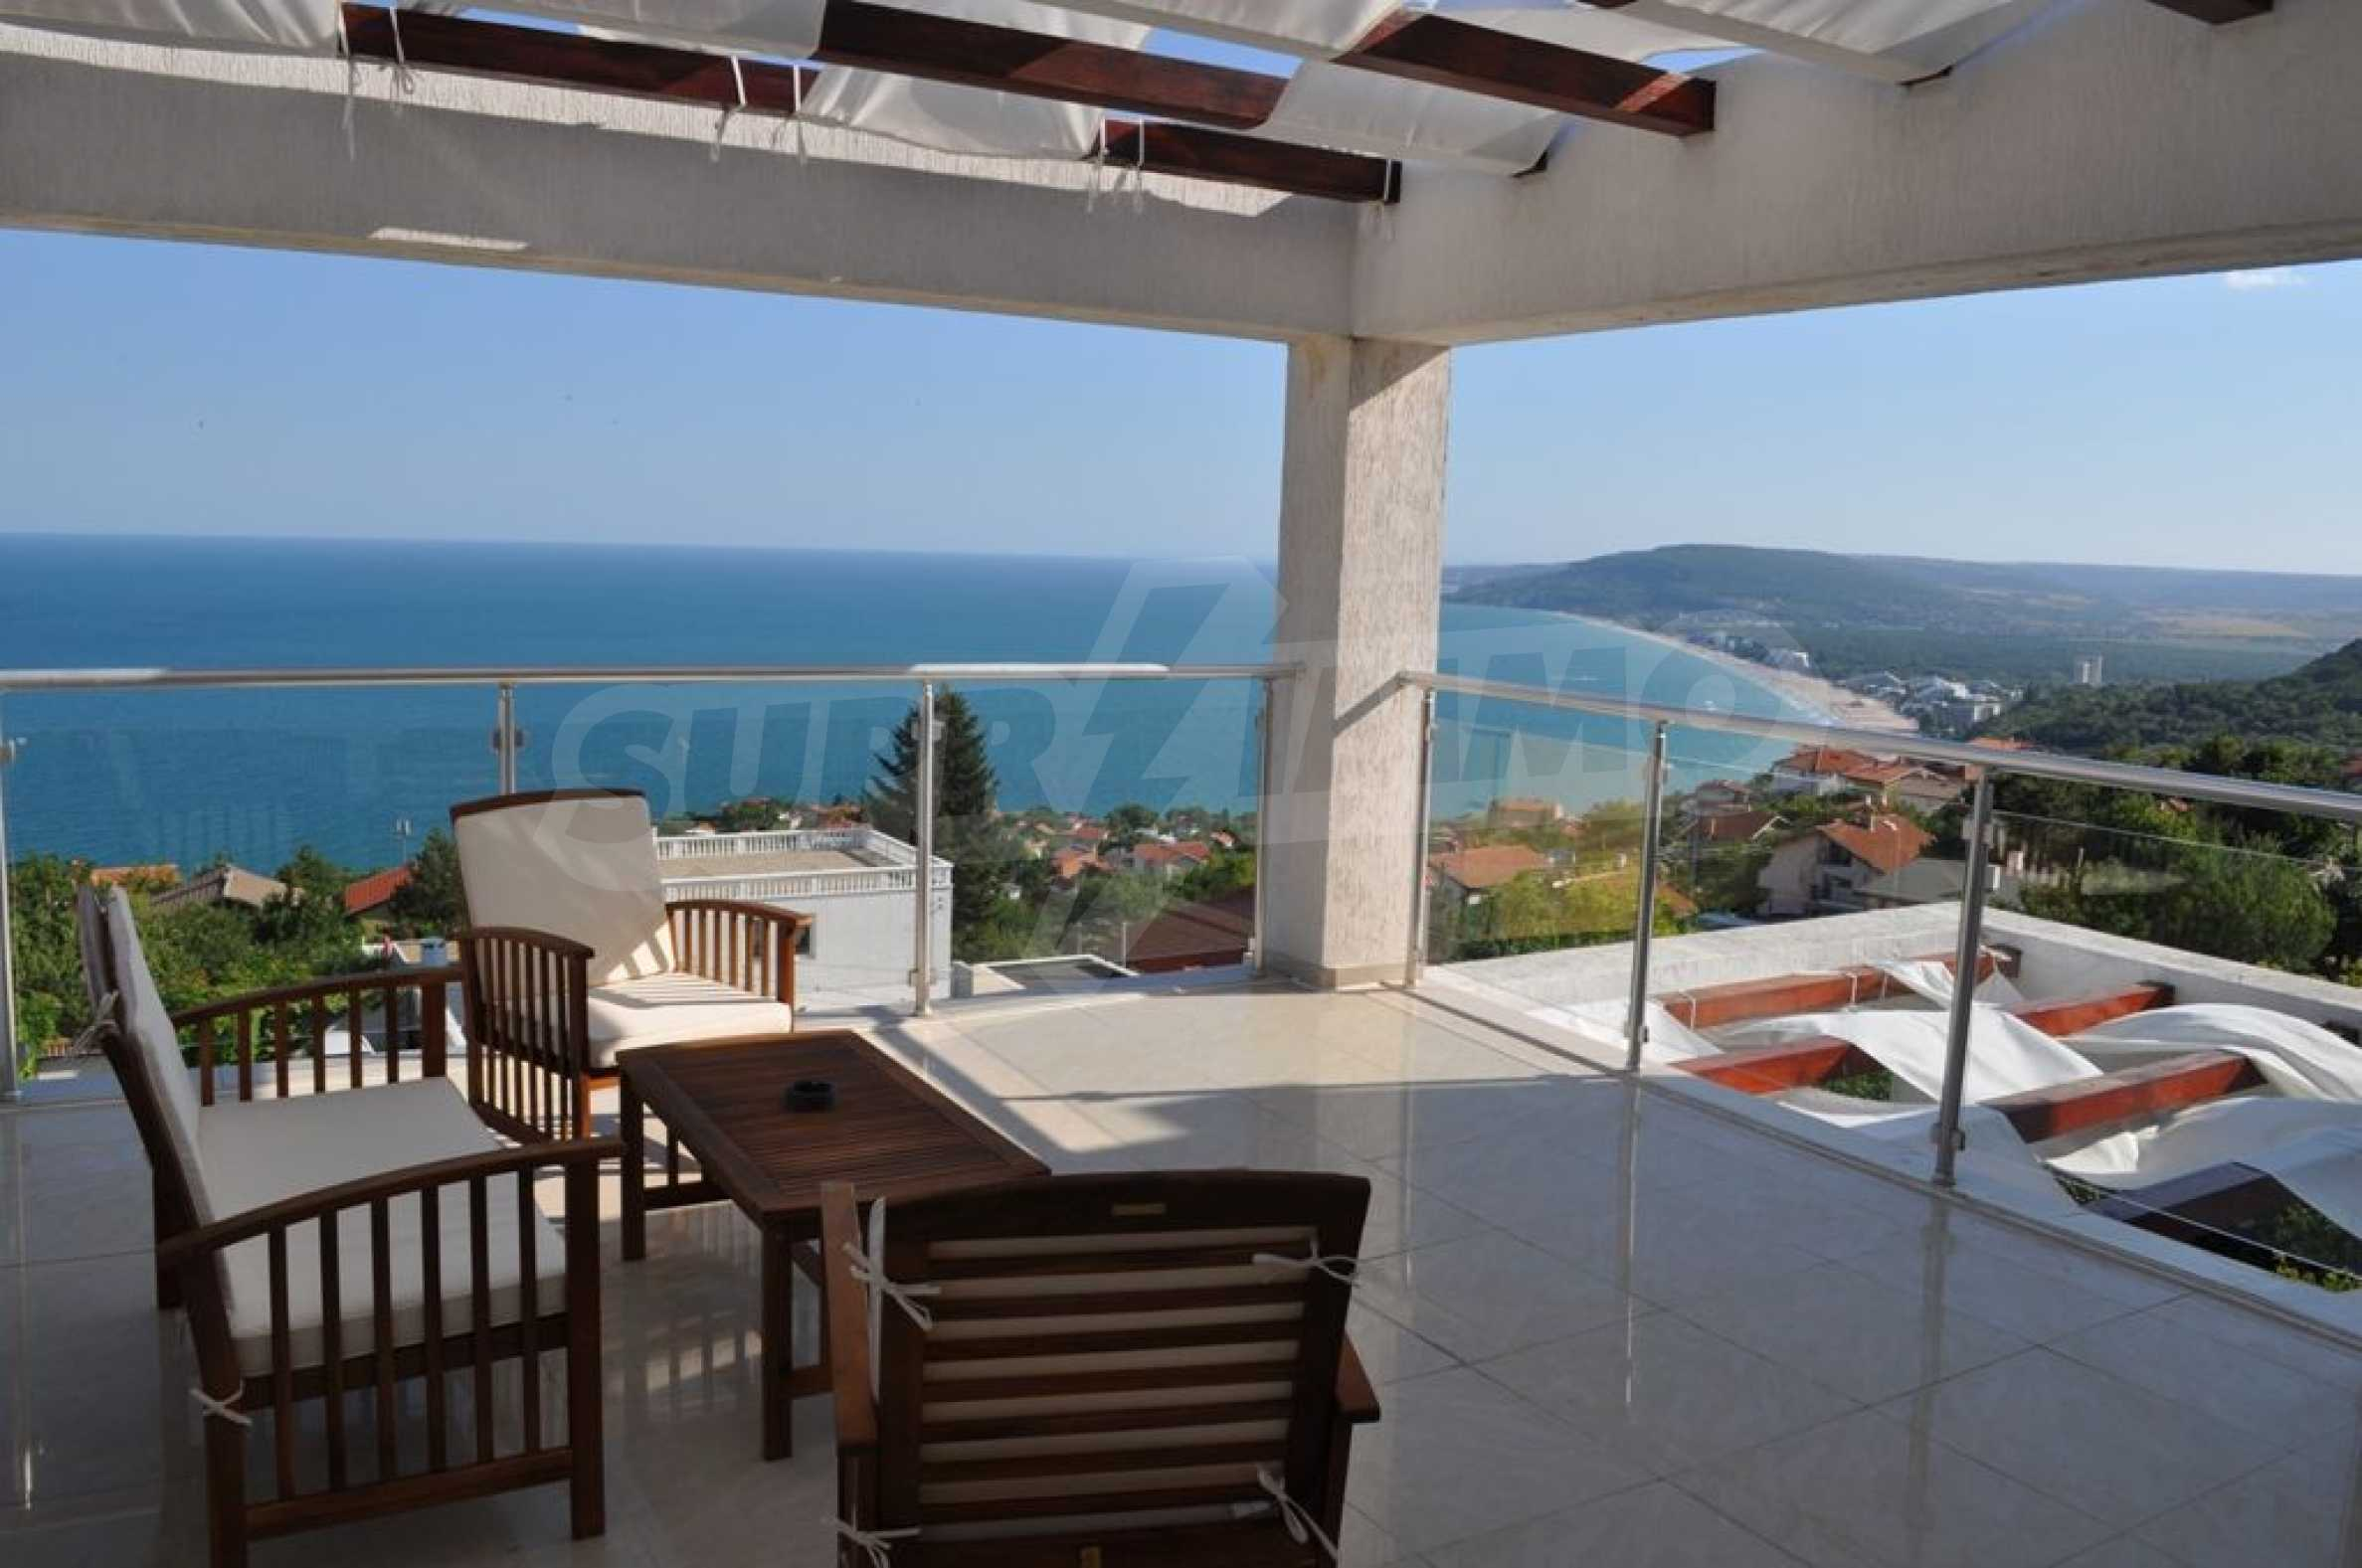 Luxury villa with 4 bedrooms for rent in Albena area  19